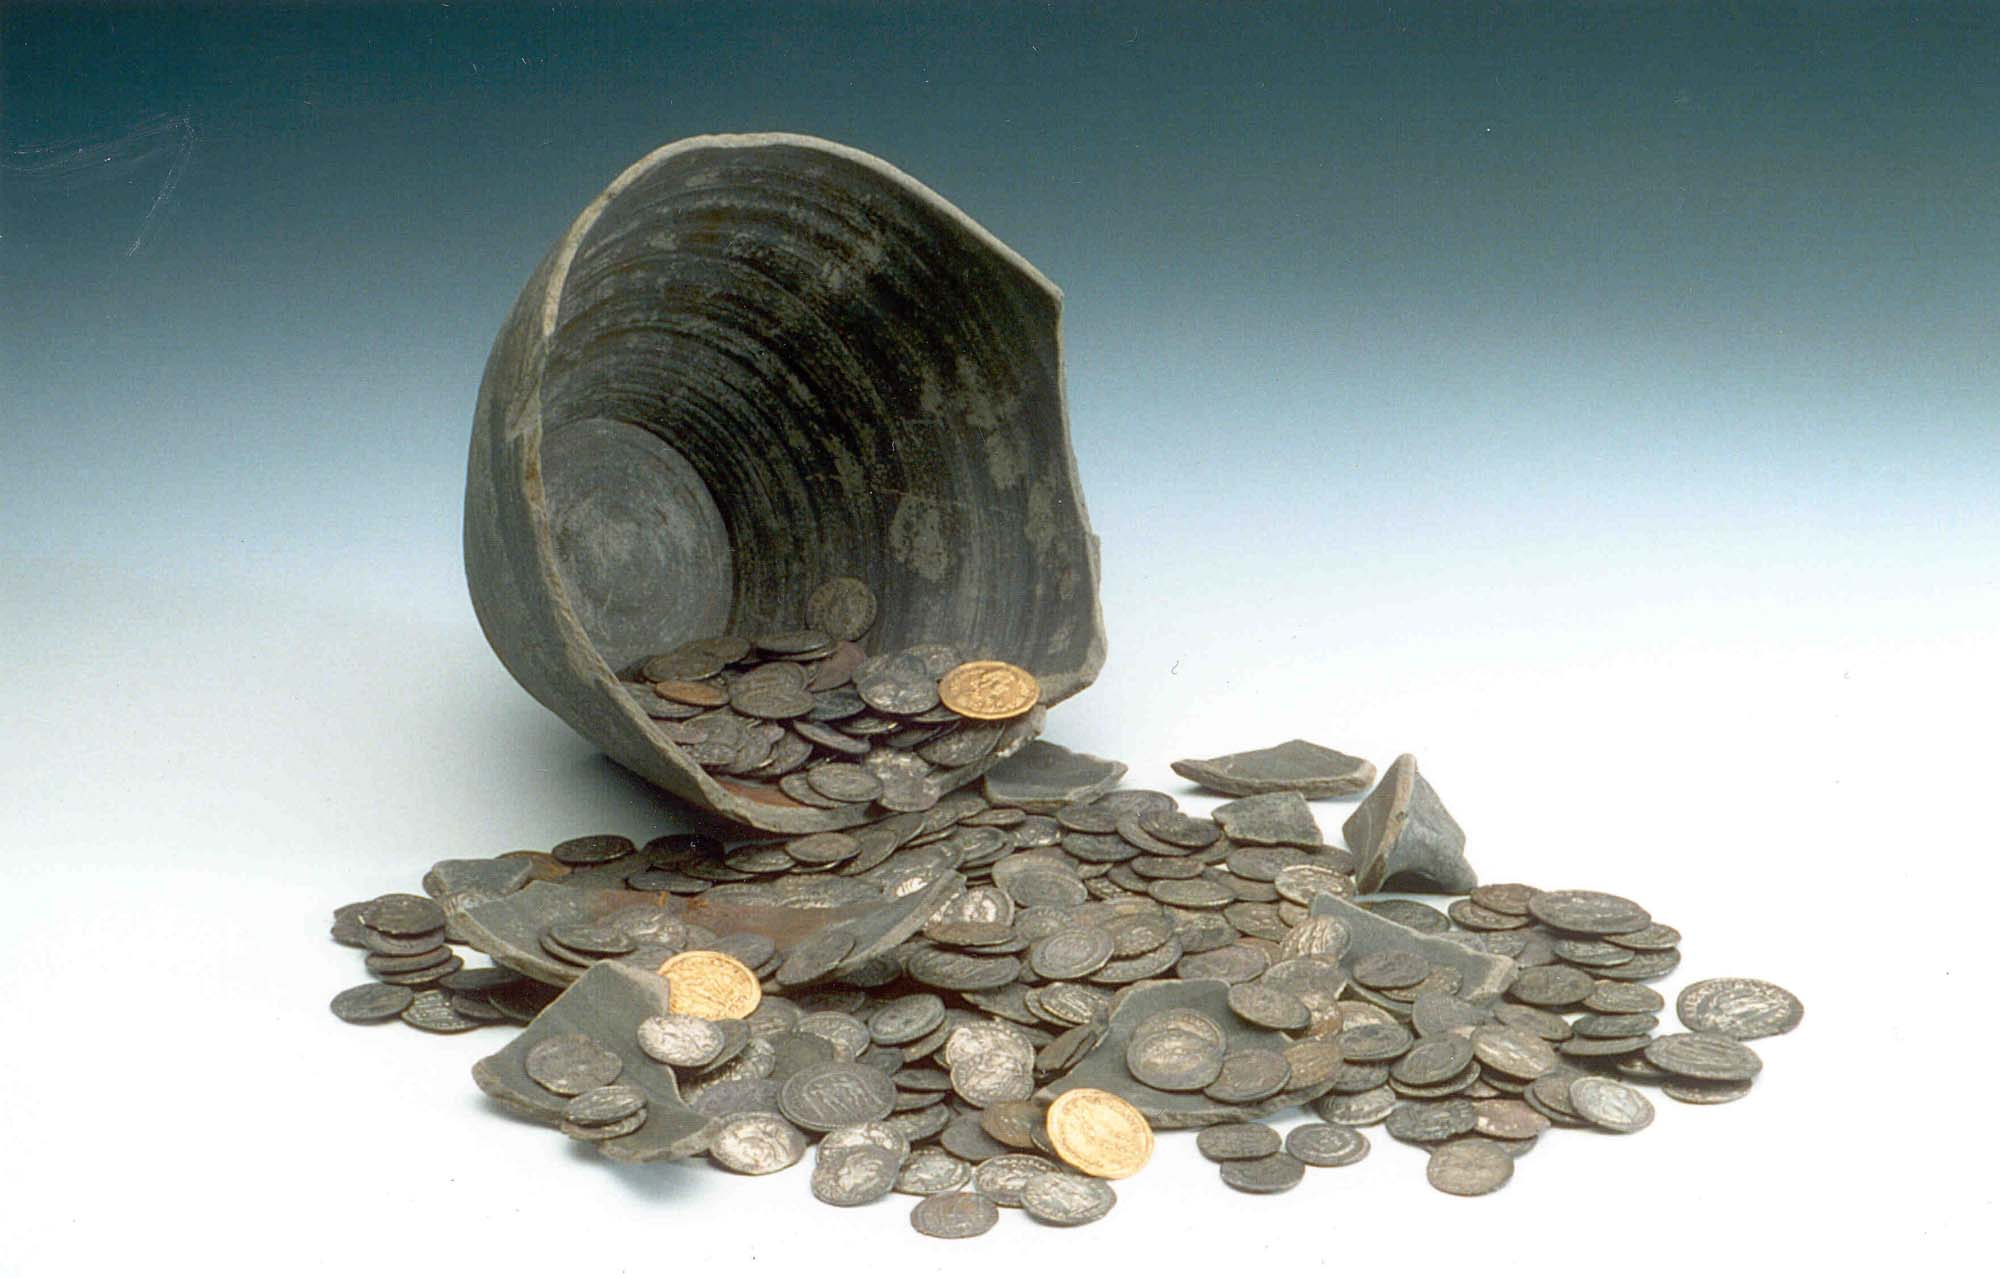 a photo of coins spilling out of a broken pot